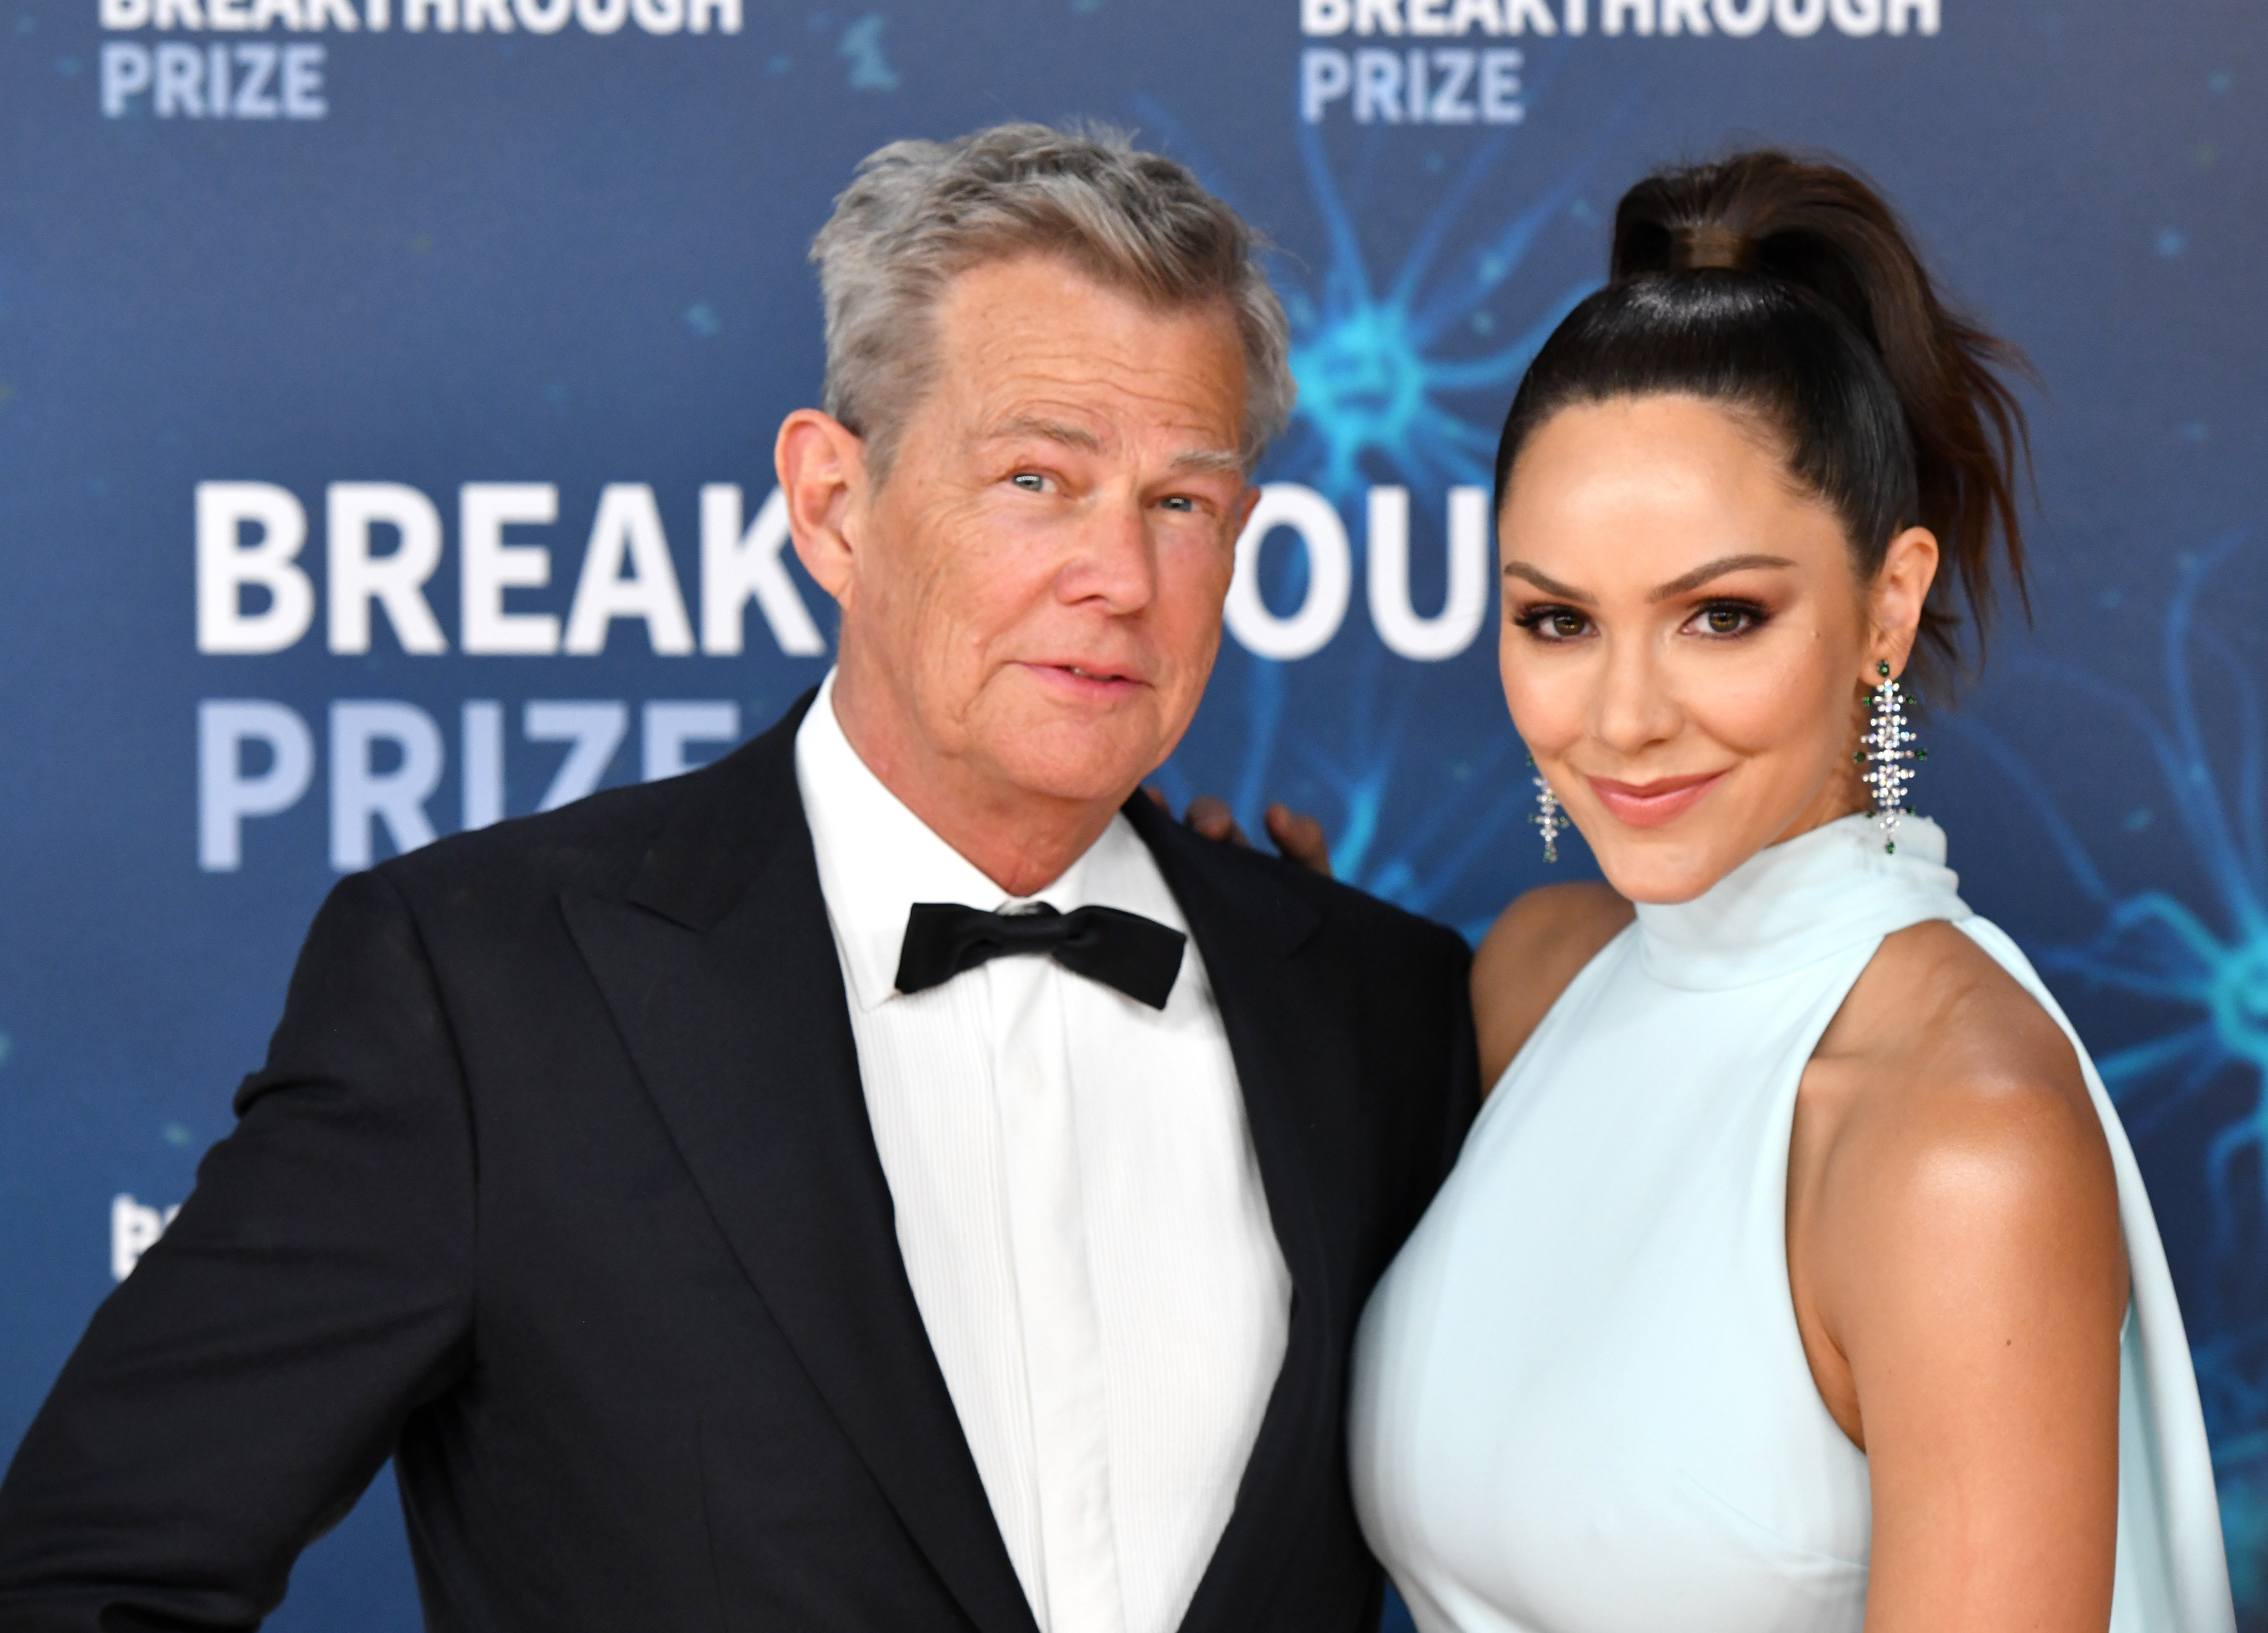 David Foster and Katharine McPhee pictured at the 2020 Breakthrough Prize Red Carpet at NASA Ames Research Center, California. | Photo: Getty Images